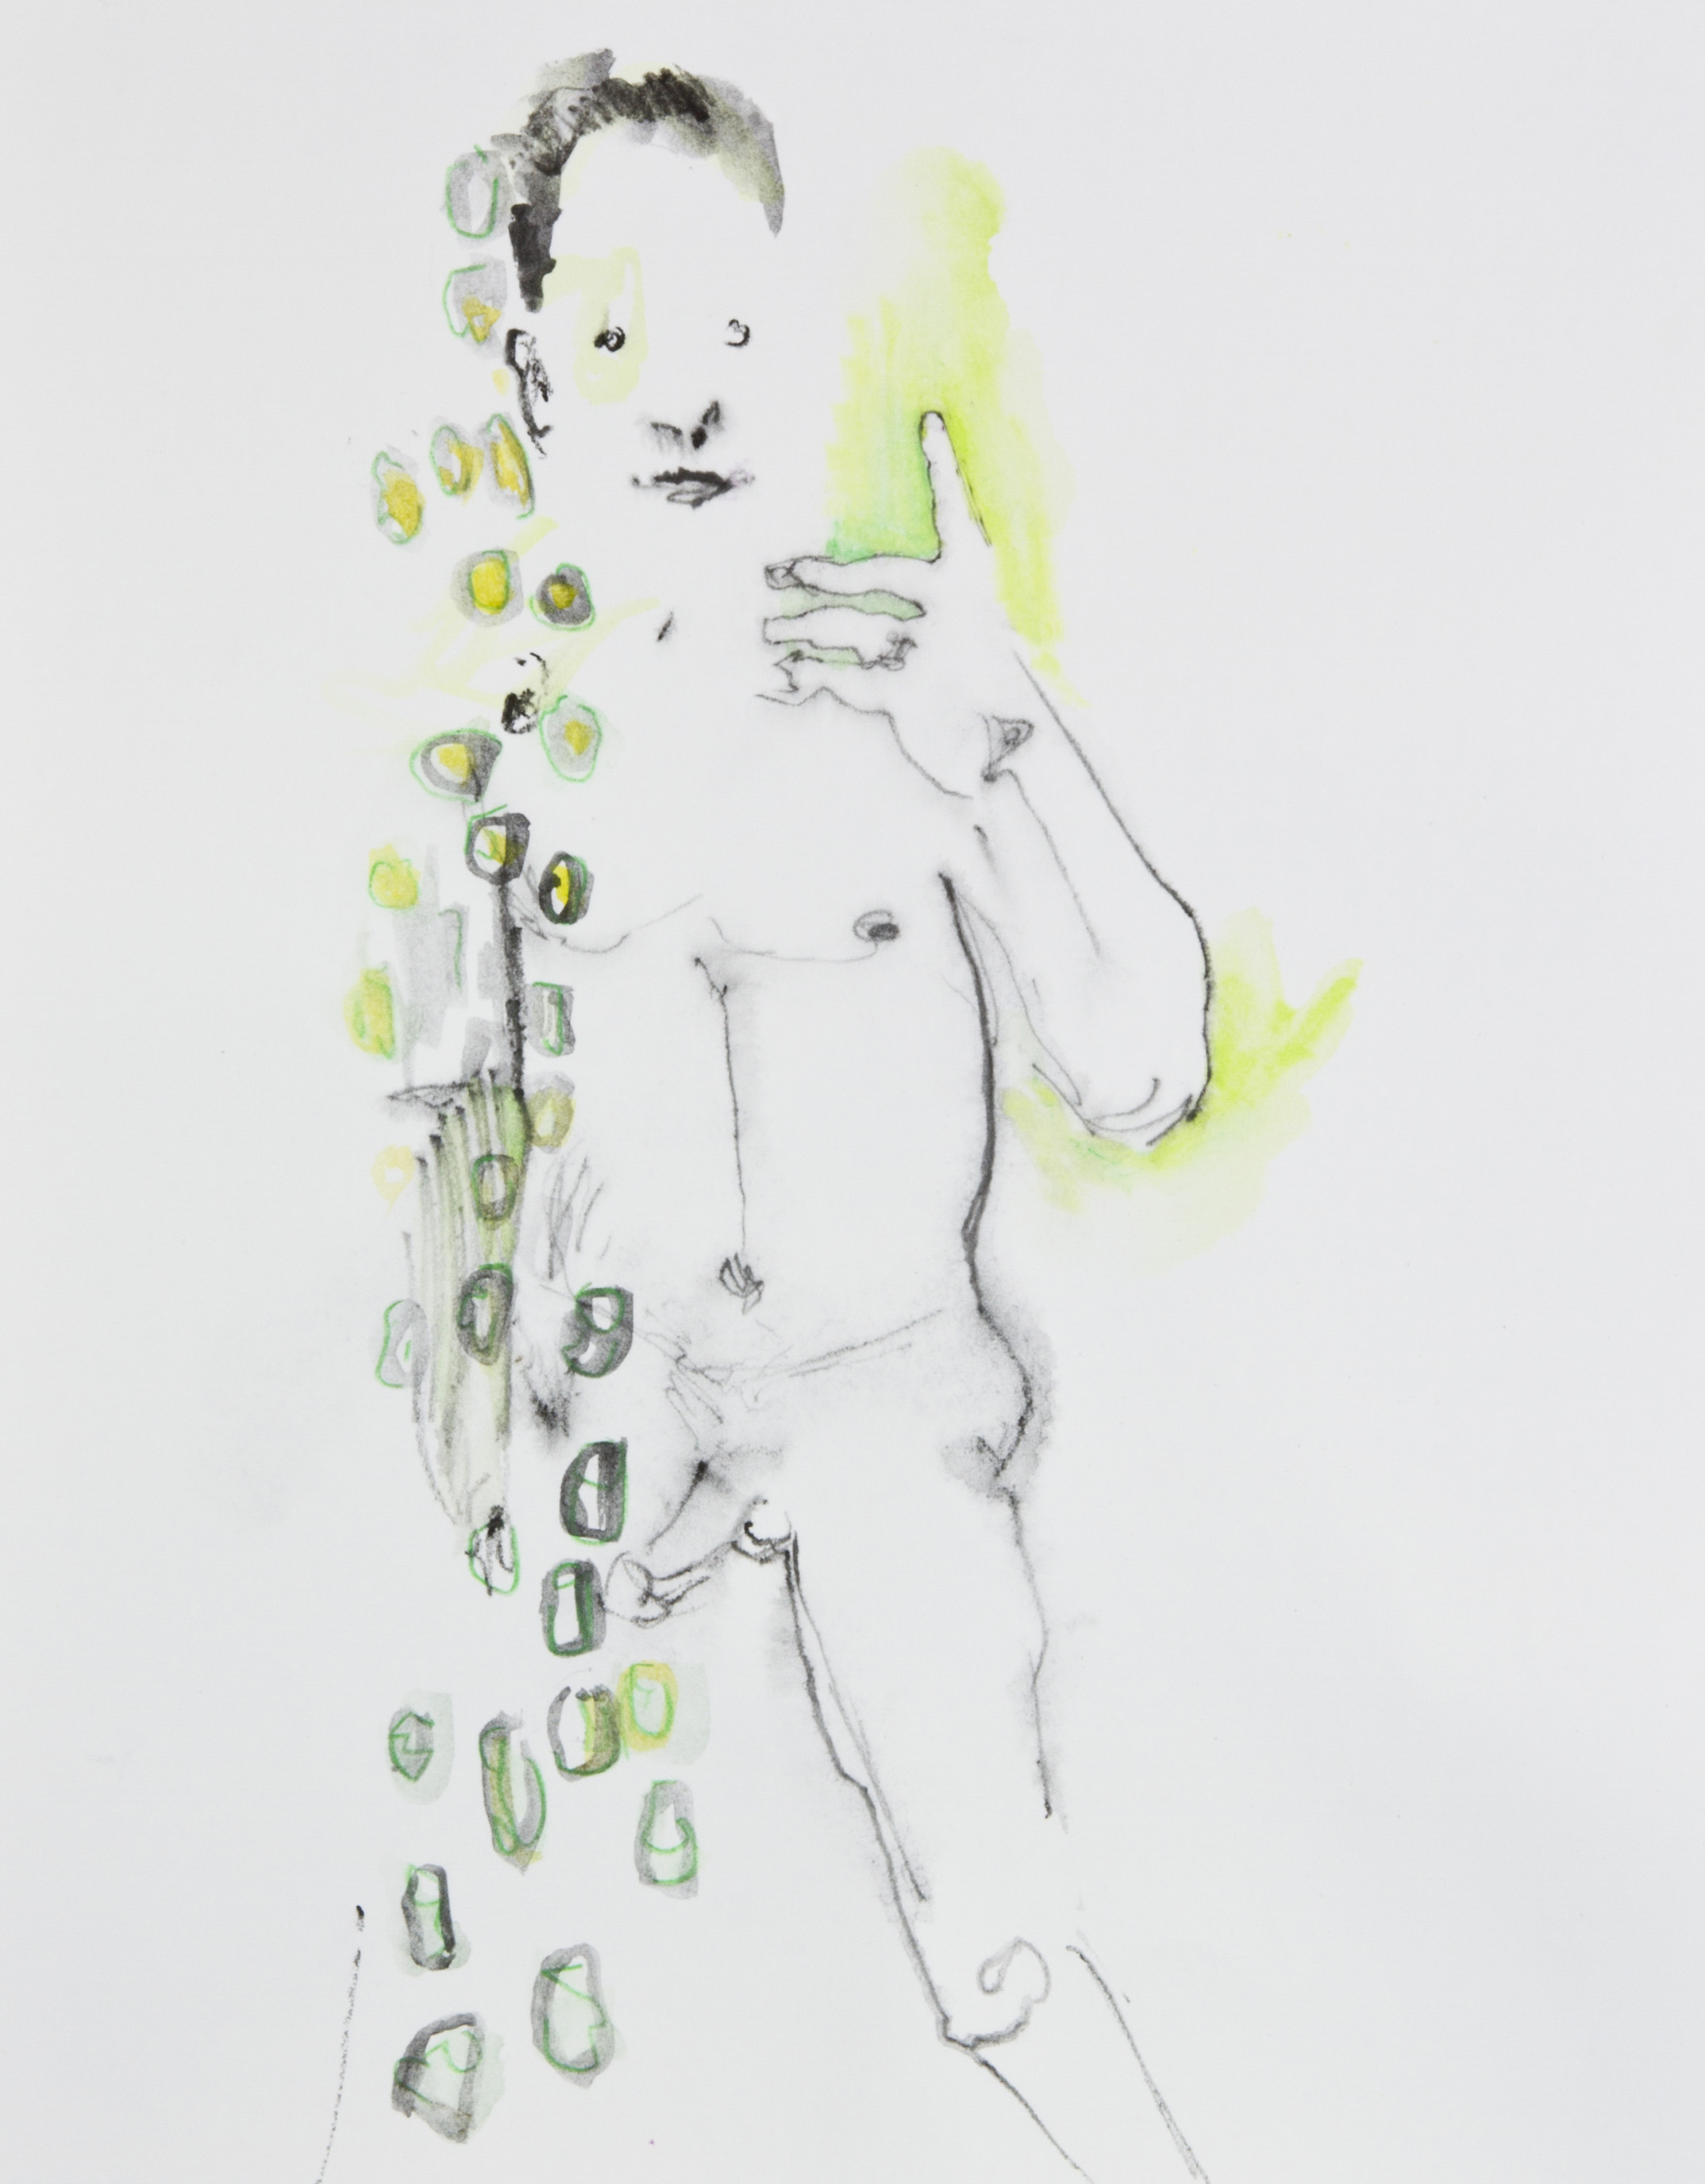 Left Tingle, 2013, graphite, crayon and watercolor pencil on paper, 11x14 inches